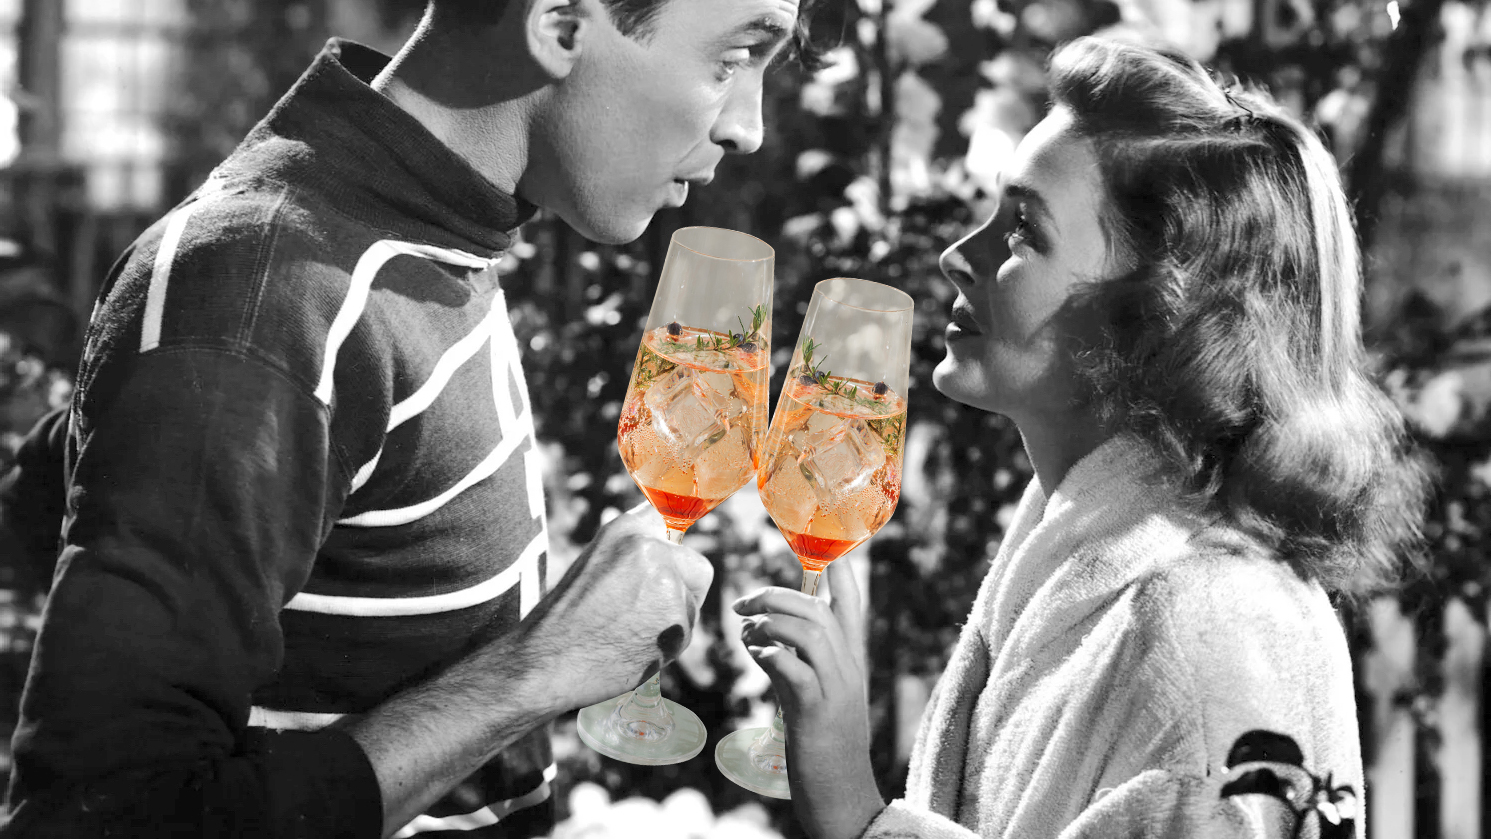 holiday-cocktails-for-holiday-movies: It's a Wonderful Life stars toasting with cocktails